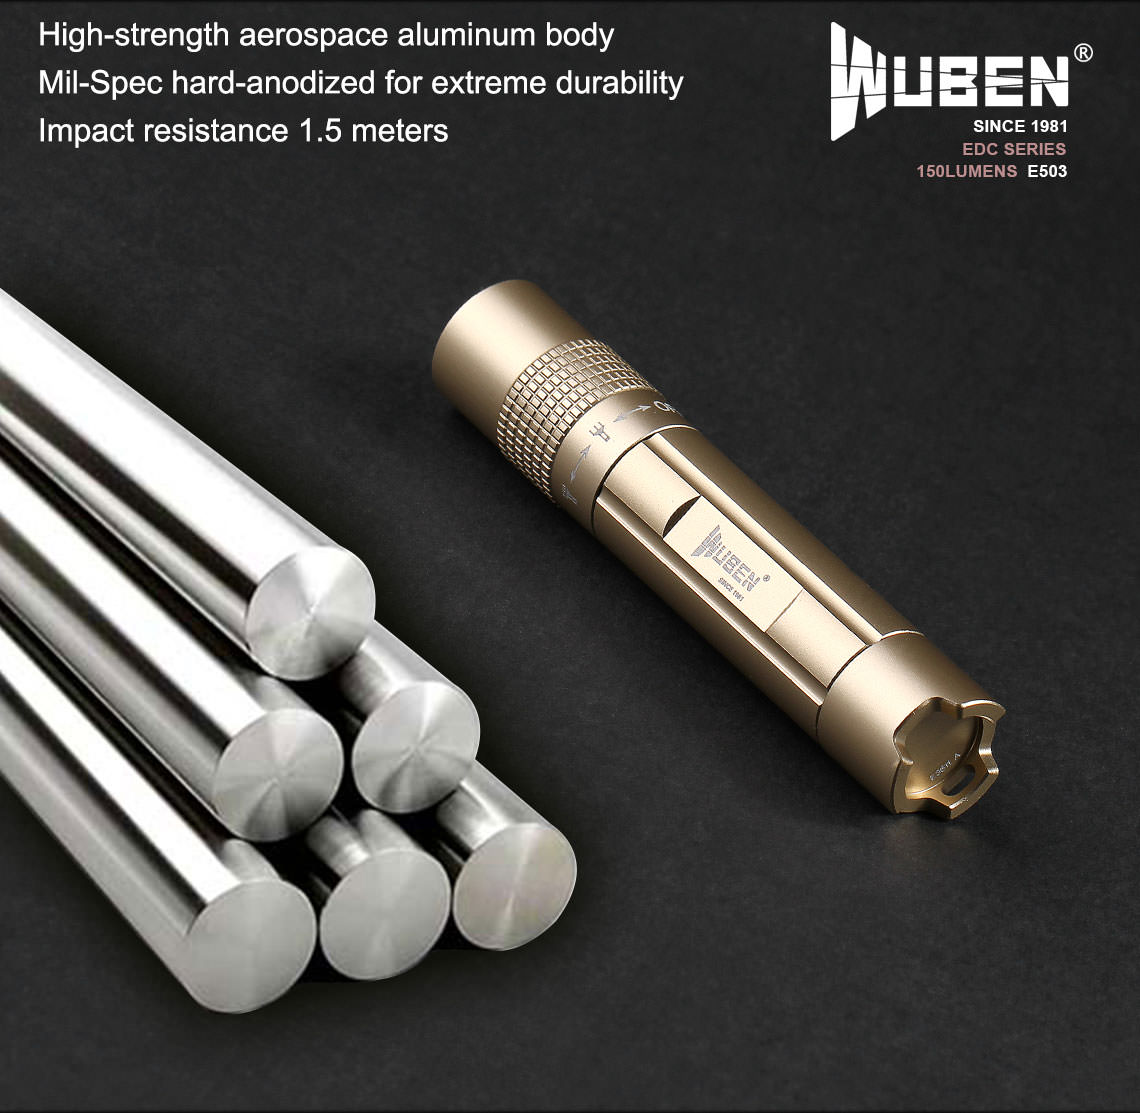 wuben e503 flashlight sale